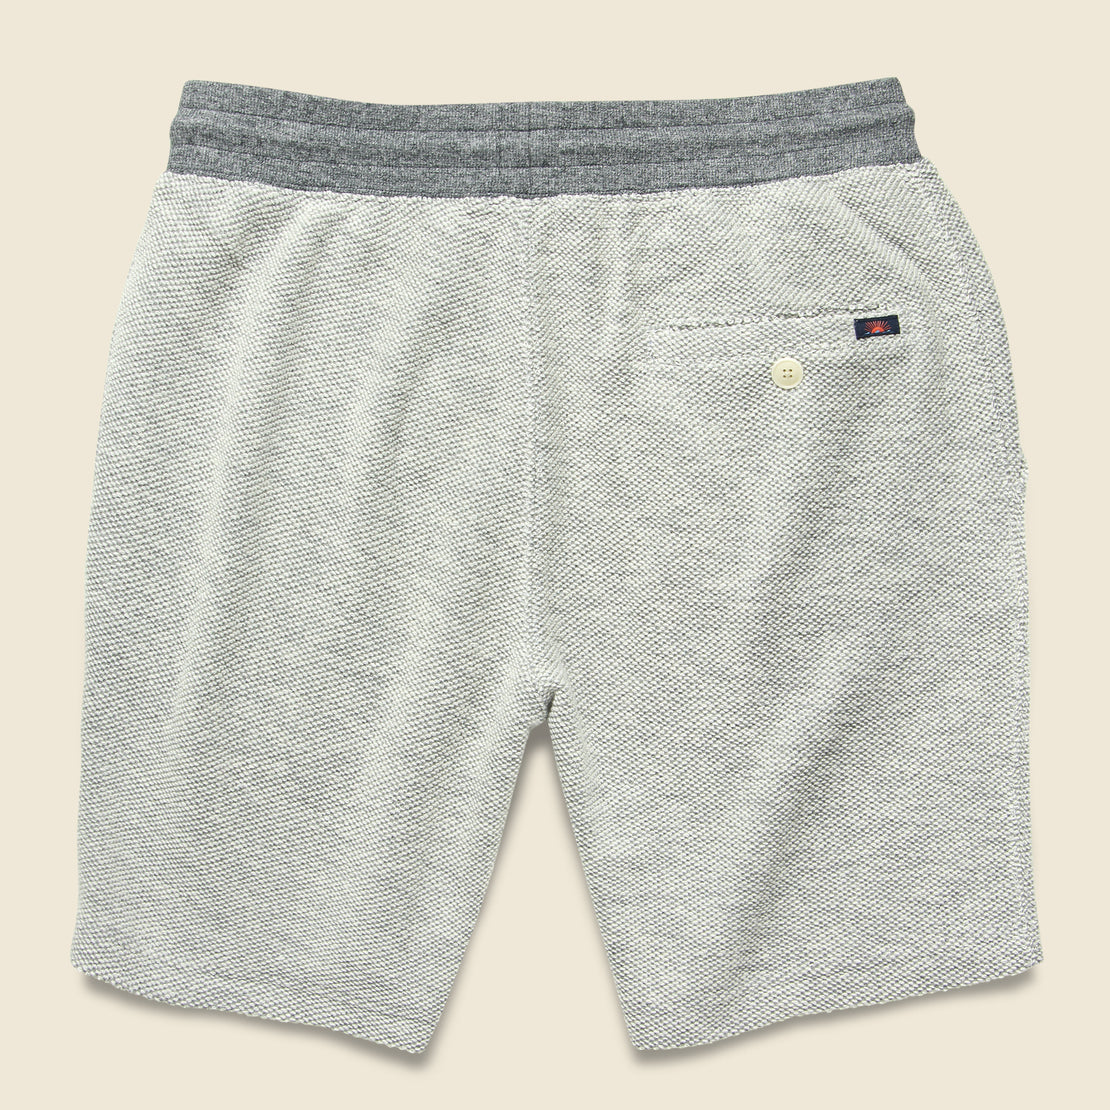 Backloop Jacquard Sweatshort - Grey